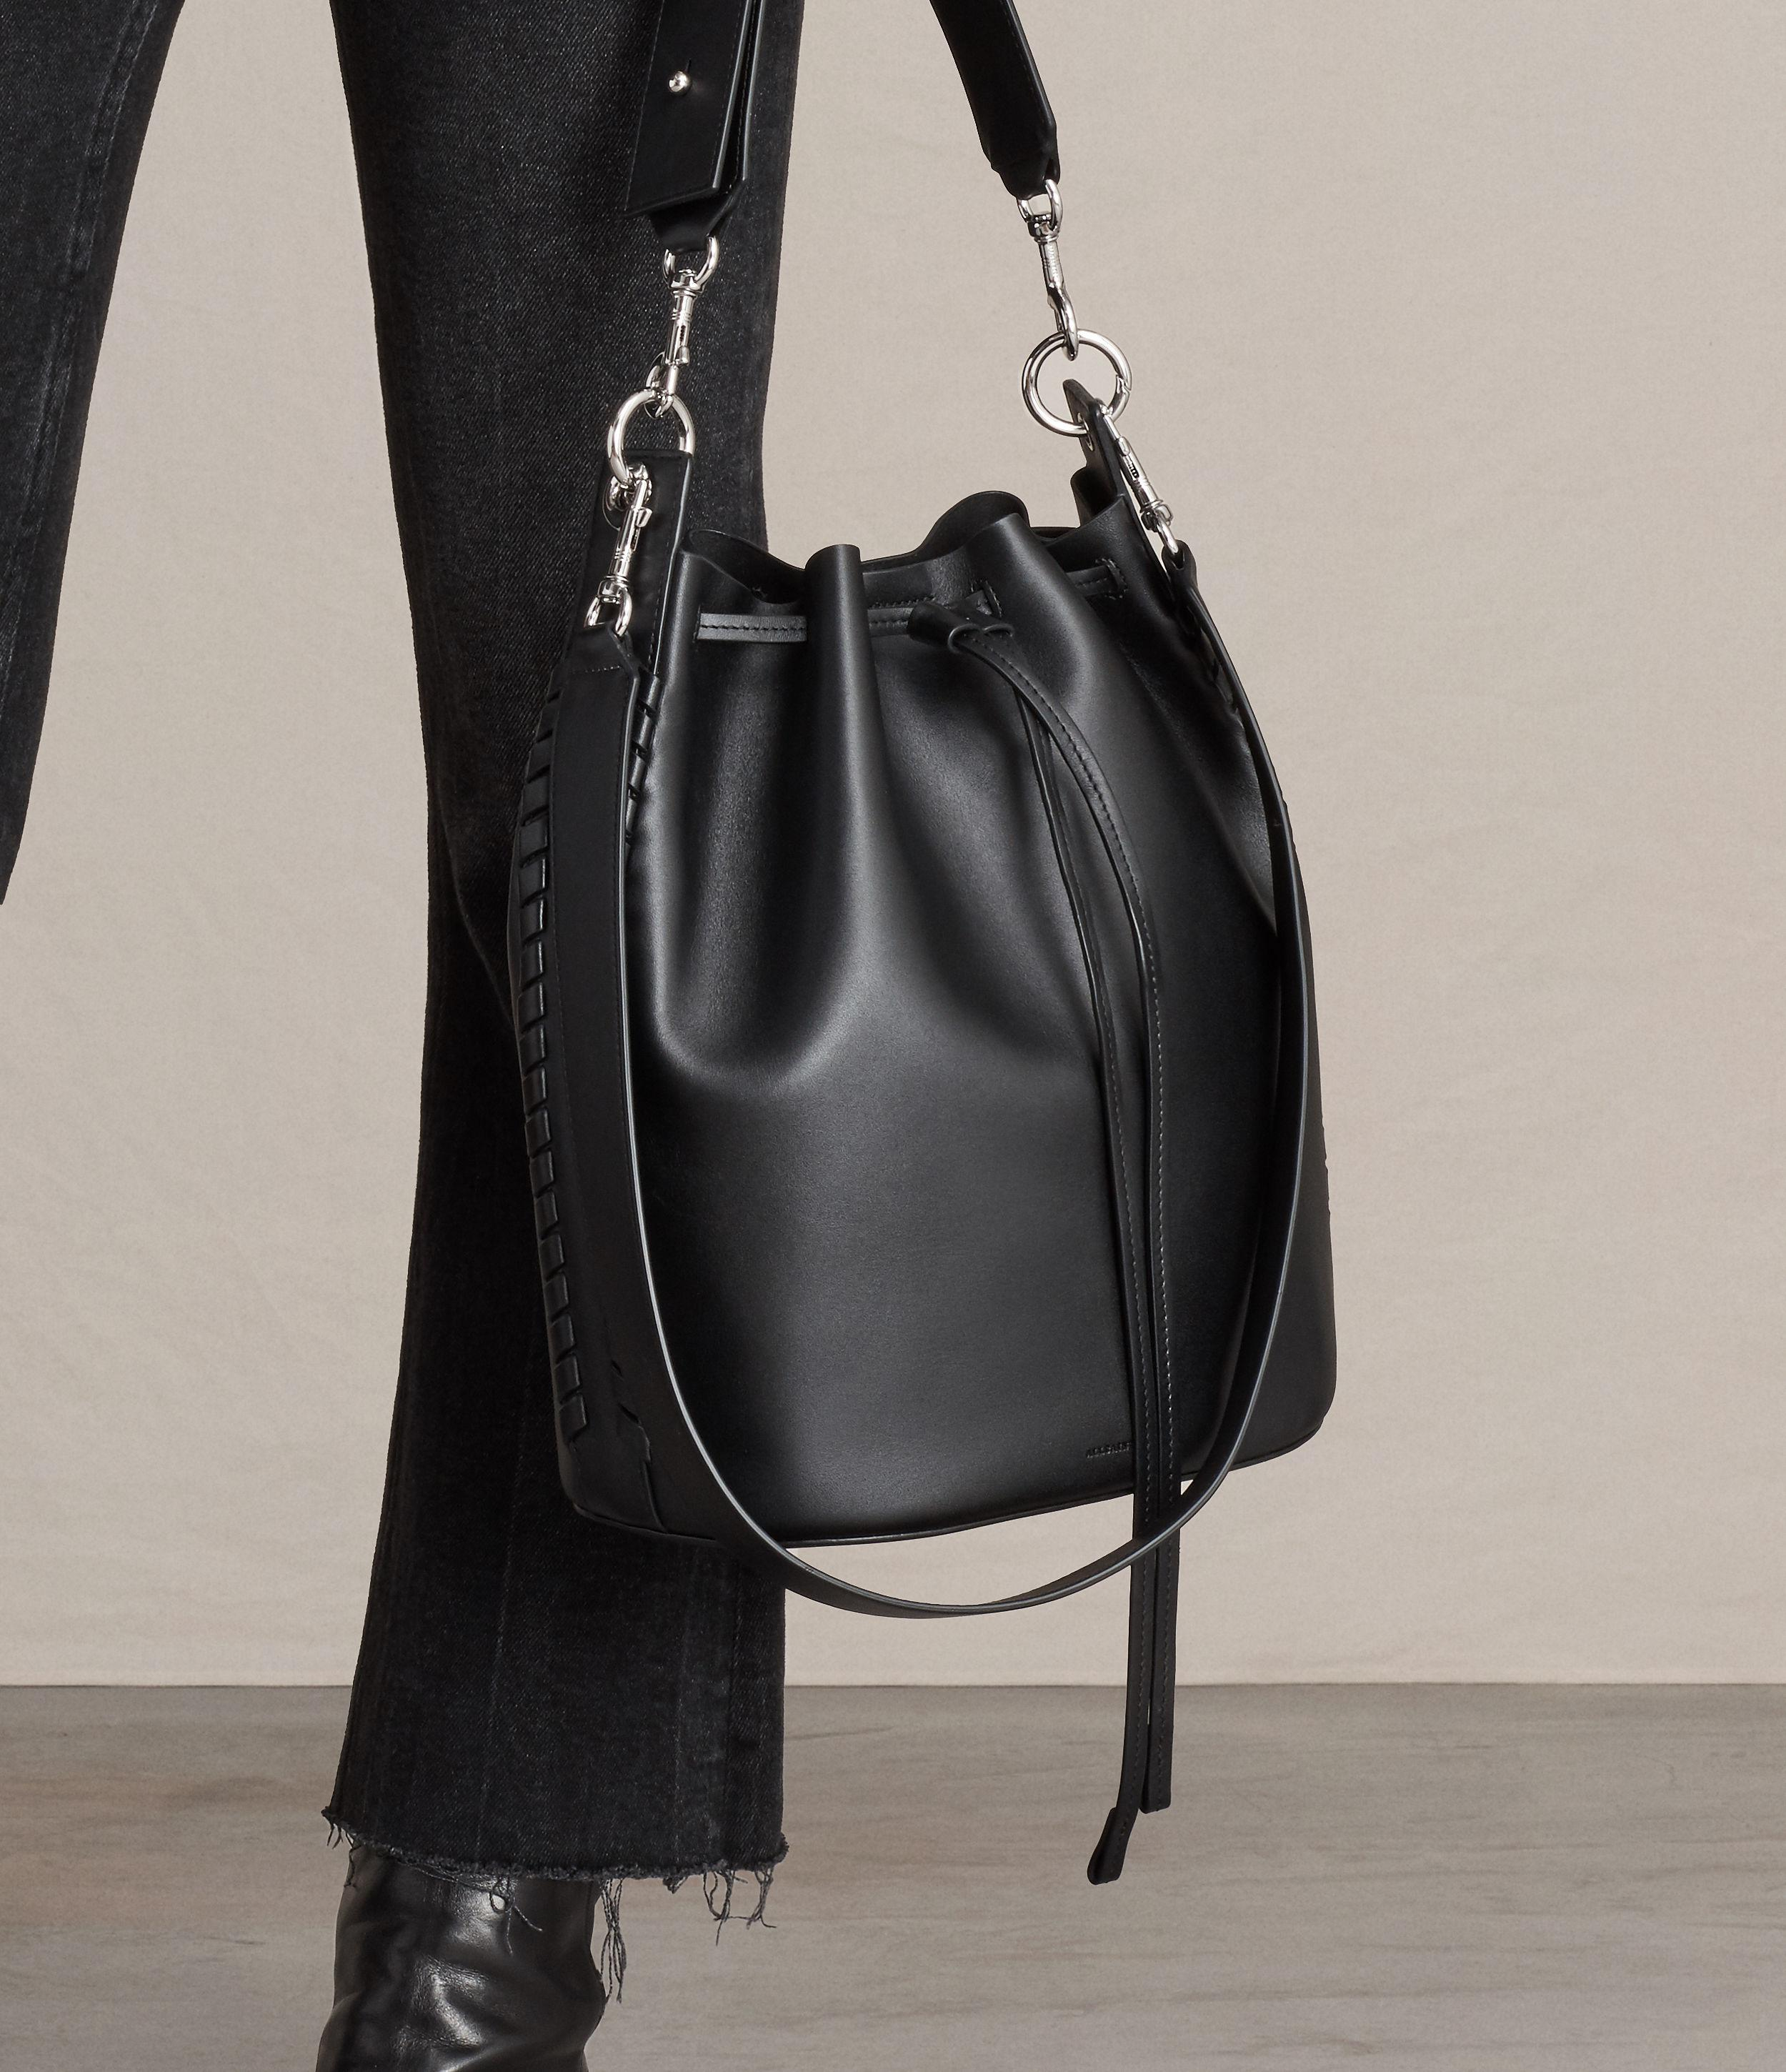 hot product best deals on undefeated x All Saints Handbags